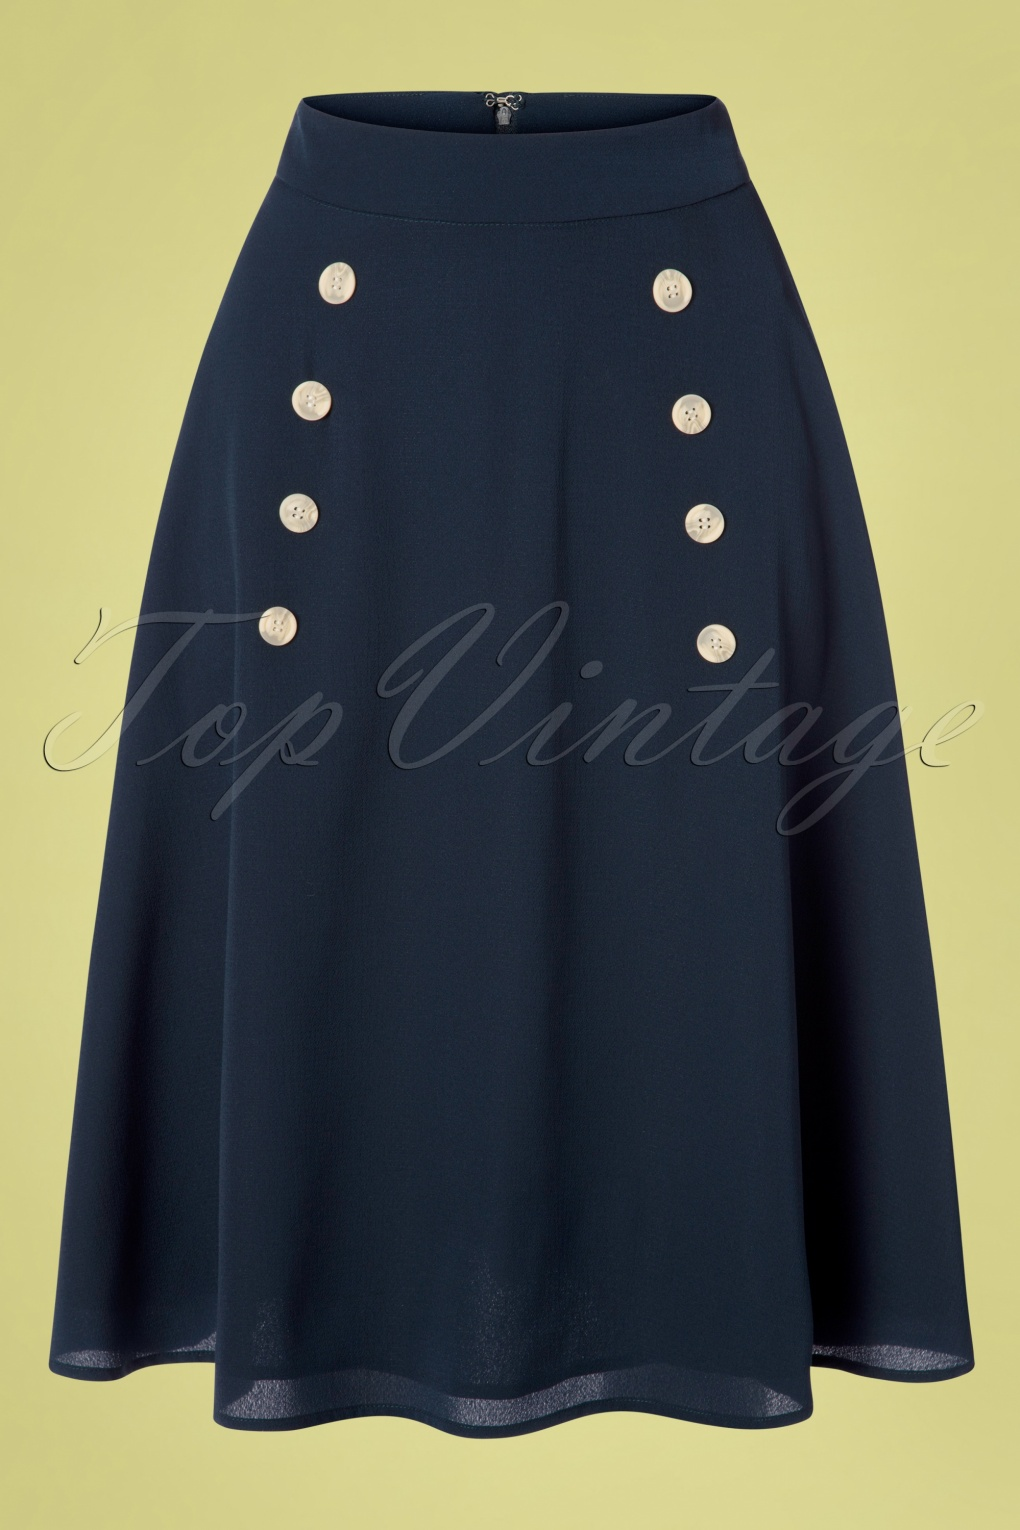 1940s Dresses and Clothing UK | 40s Shoes UK 50s Cute As A Button Skirt in Navy �38.00 AT vintagedancer.com